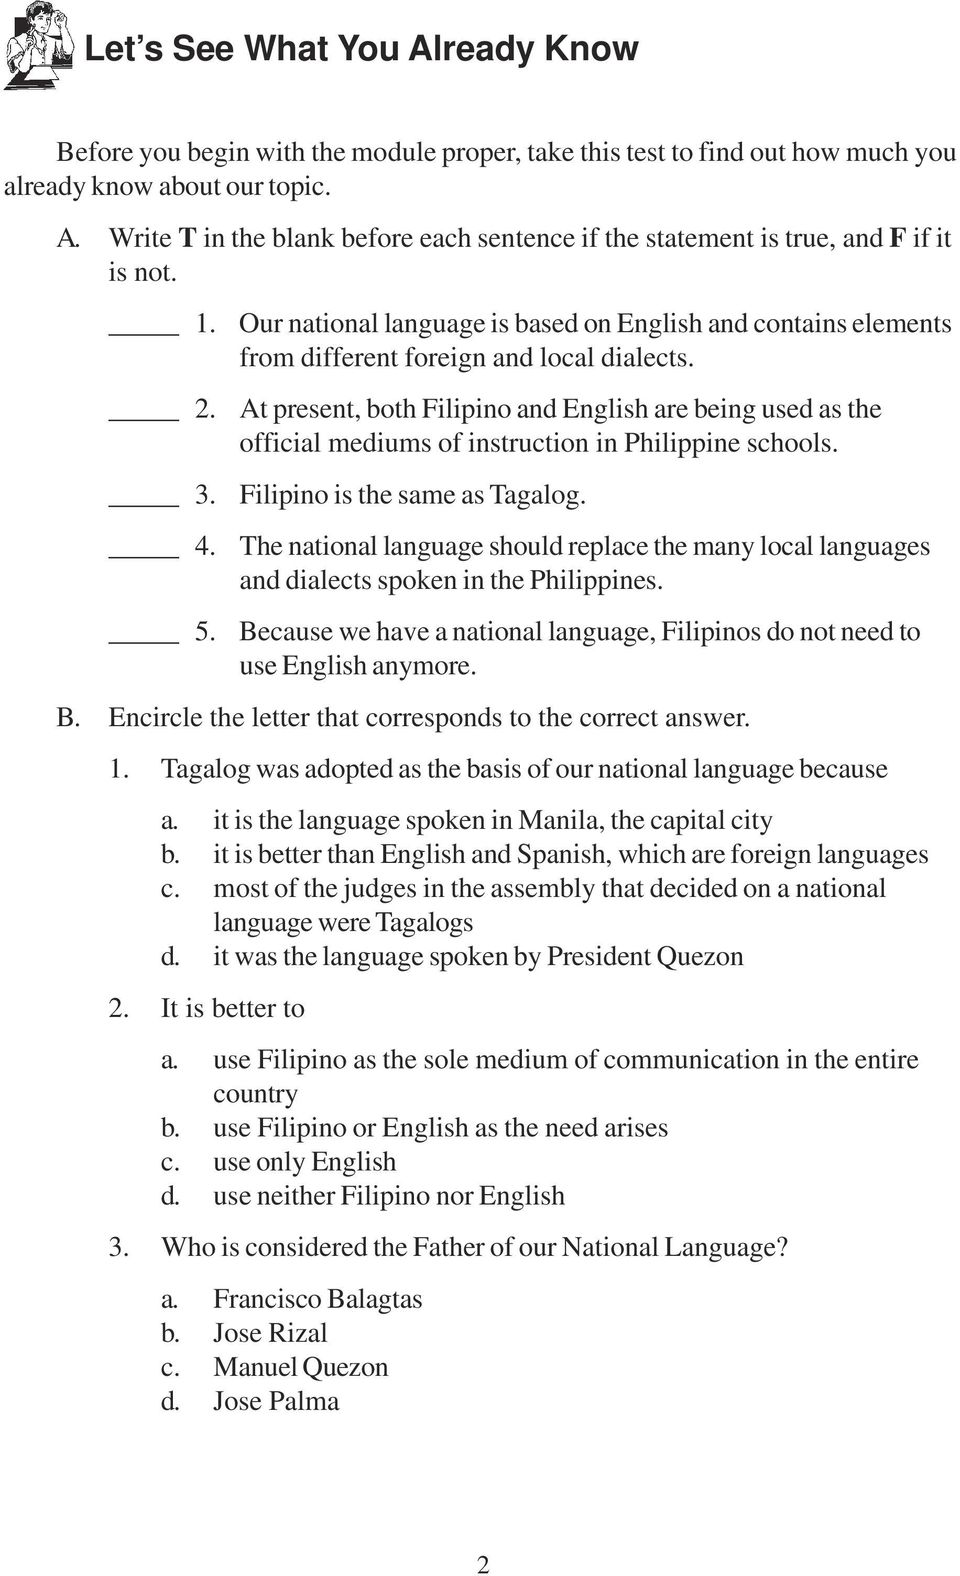 At present, both Filipino and English are being used as the official mediums of instruction in Philippine schools. Filipino is the same as Tagalog.